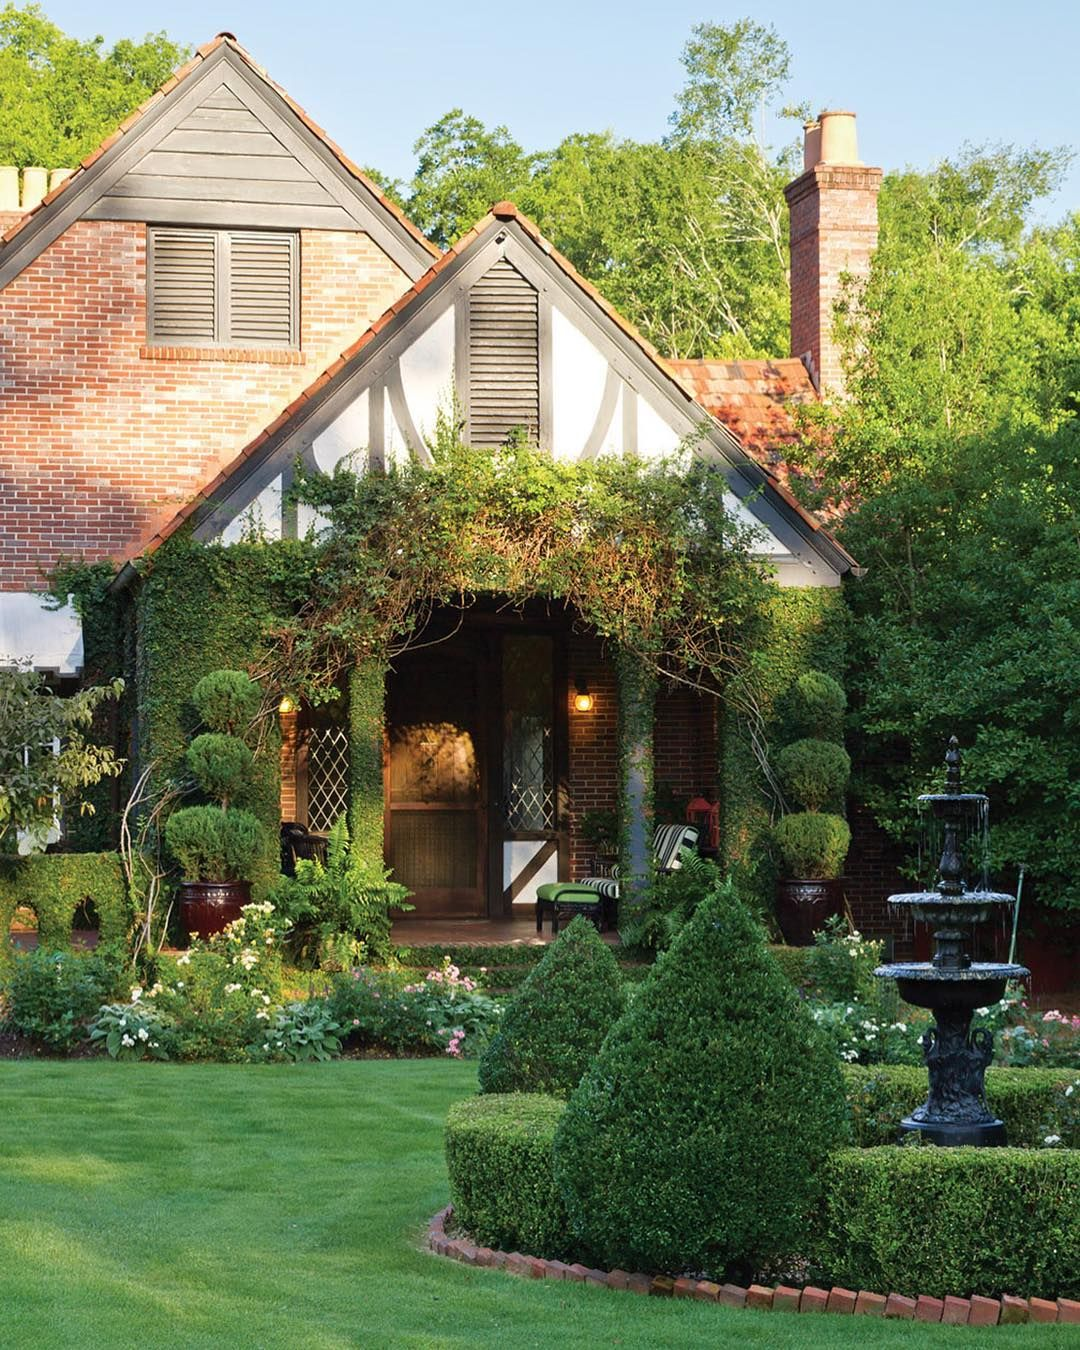 Step Inside This Lovely Colorful Cottage In Our July August Issue On Newsstands Now And Find Homeowner Mars Tudor Style Homes Tudor Cottage Cottage Exterior